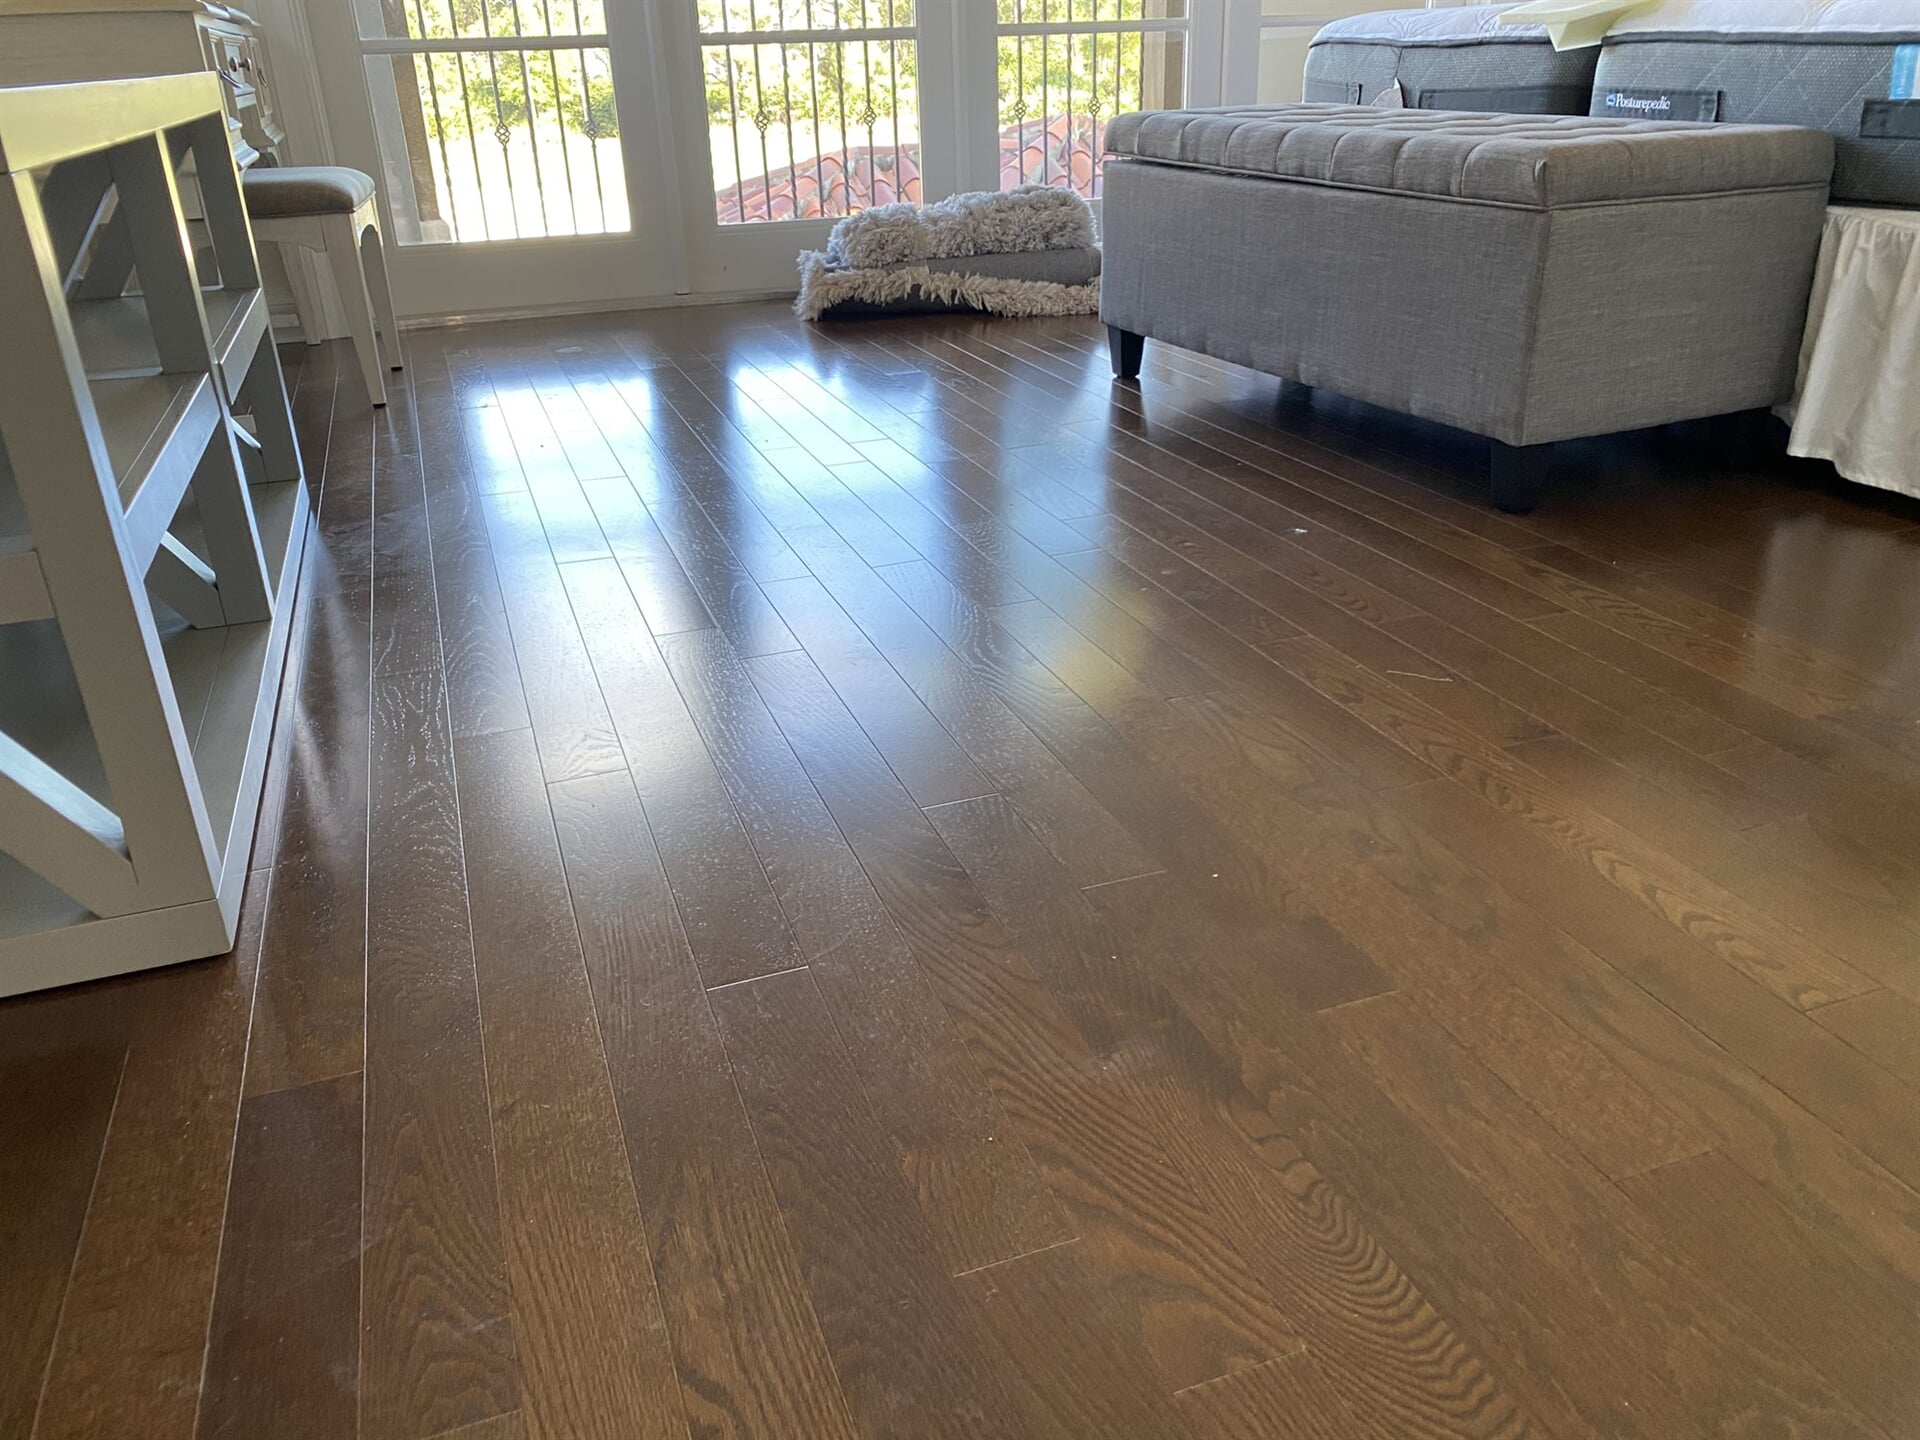 After a flooring installation in Palm Beach Gardens, FL from Floors For You Kitchen & Bath